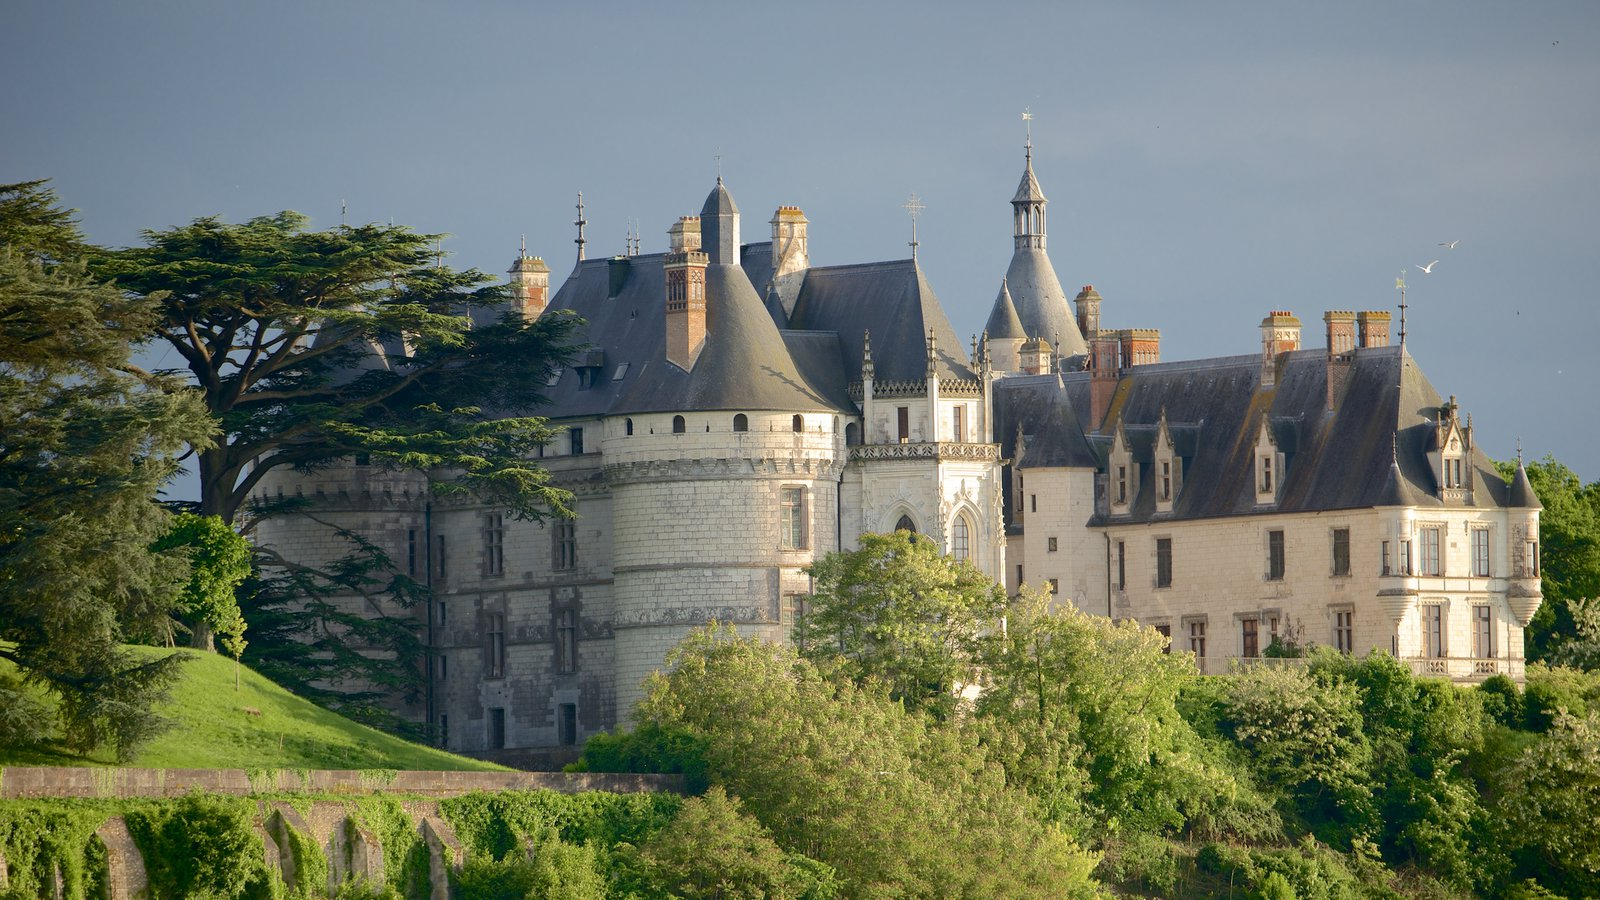 Connu Chateau de Chaumont Pictures: View Photos & Images of Chateau de  IK52